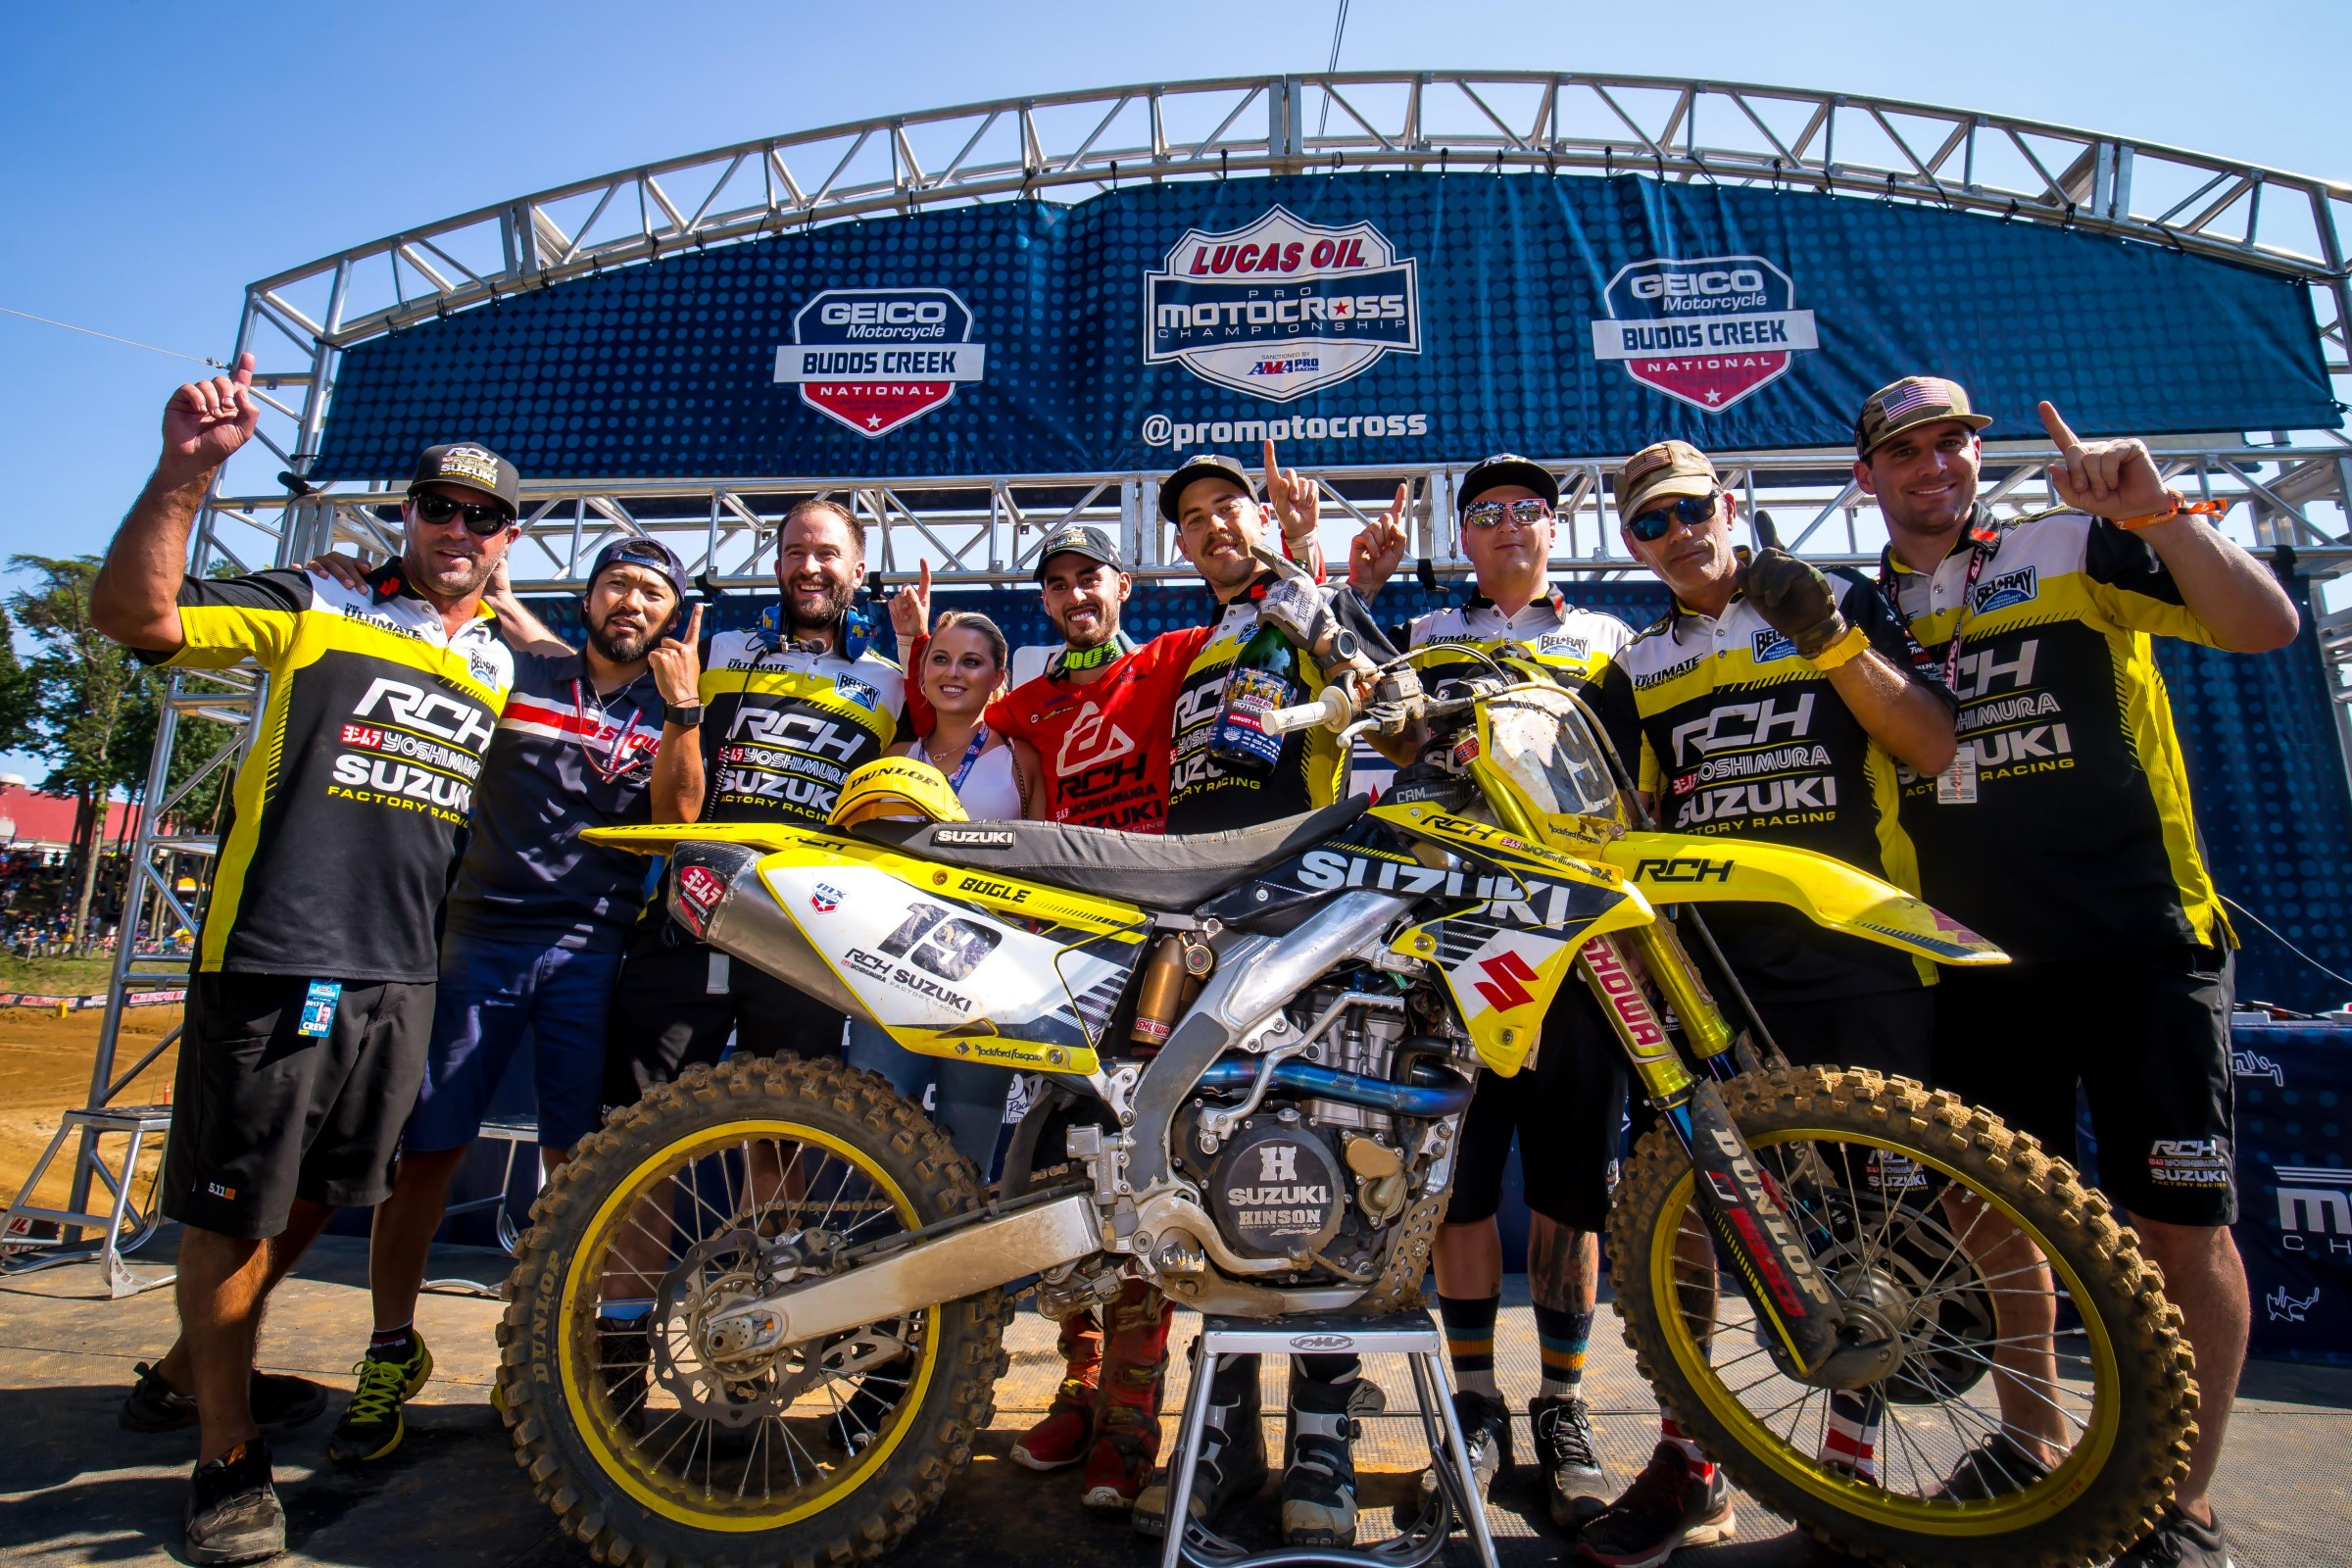 Bogle won his first Lucas Oil Pro Motocross overall at Budds Creek with 1-3 scores.